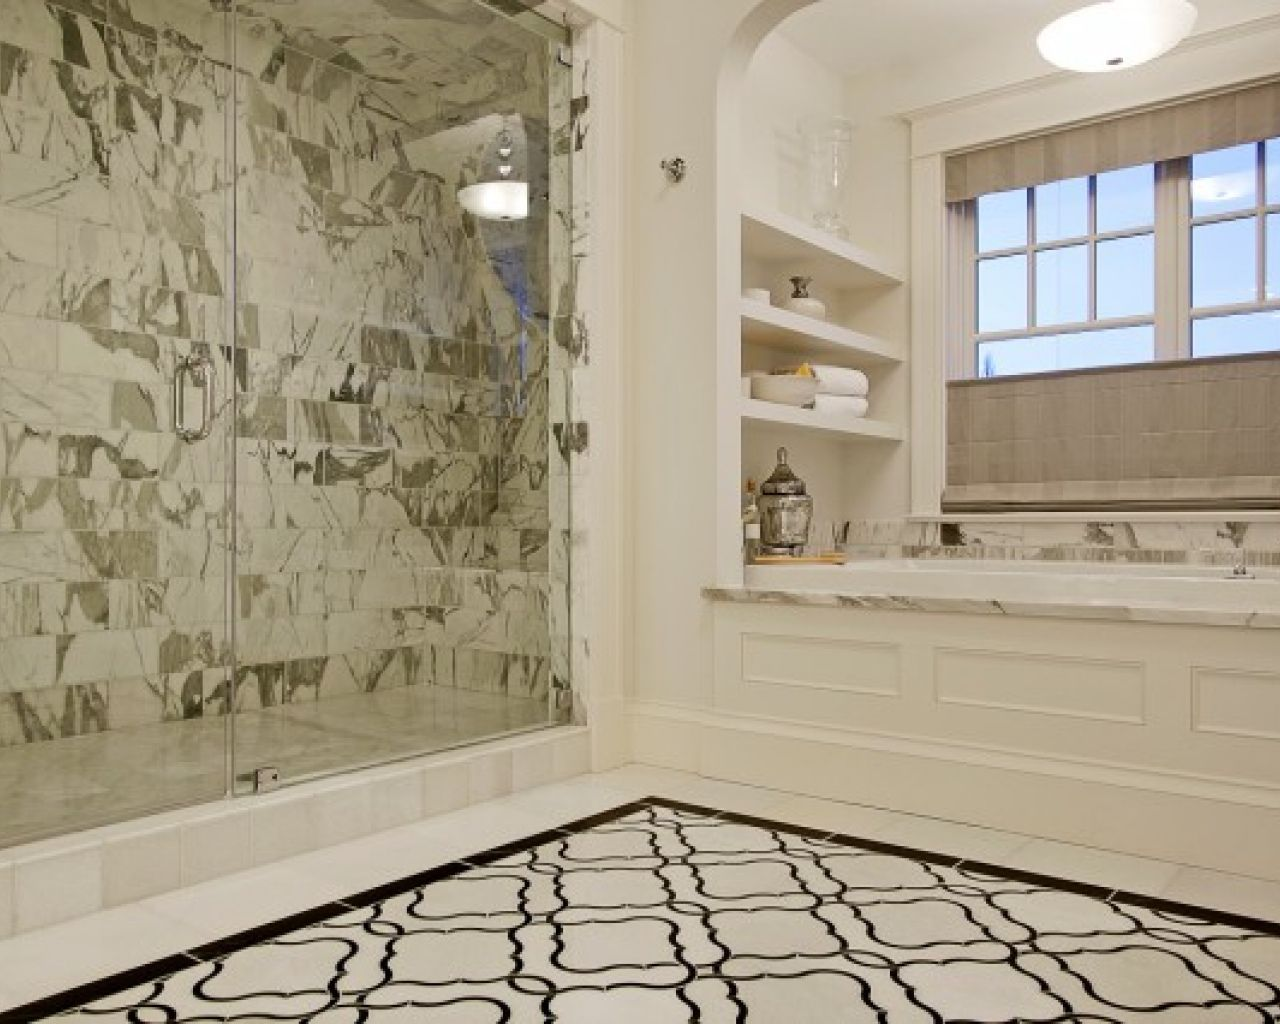 78 Images About Bathroom Flooring Ideas On Pinterest Cast Iron Tub Marbles And Carrara Marble